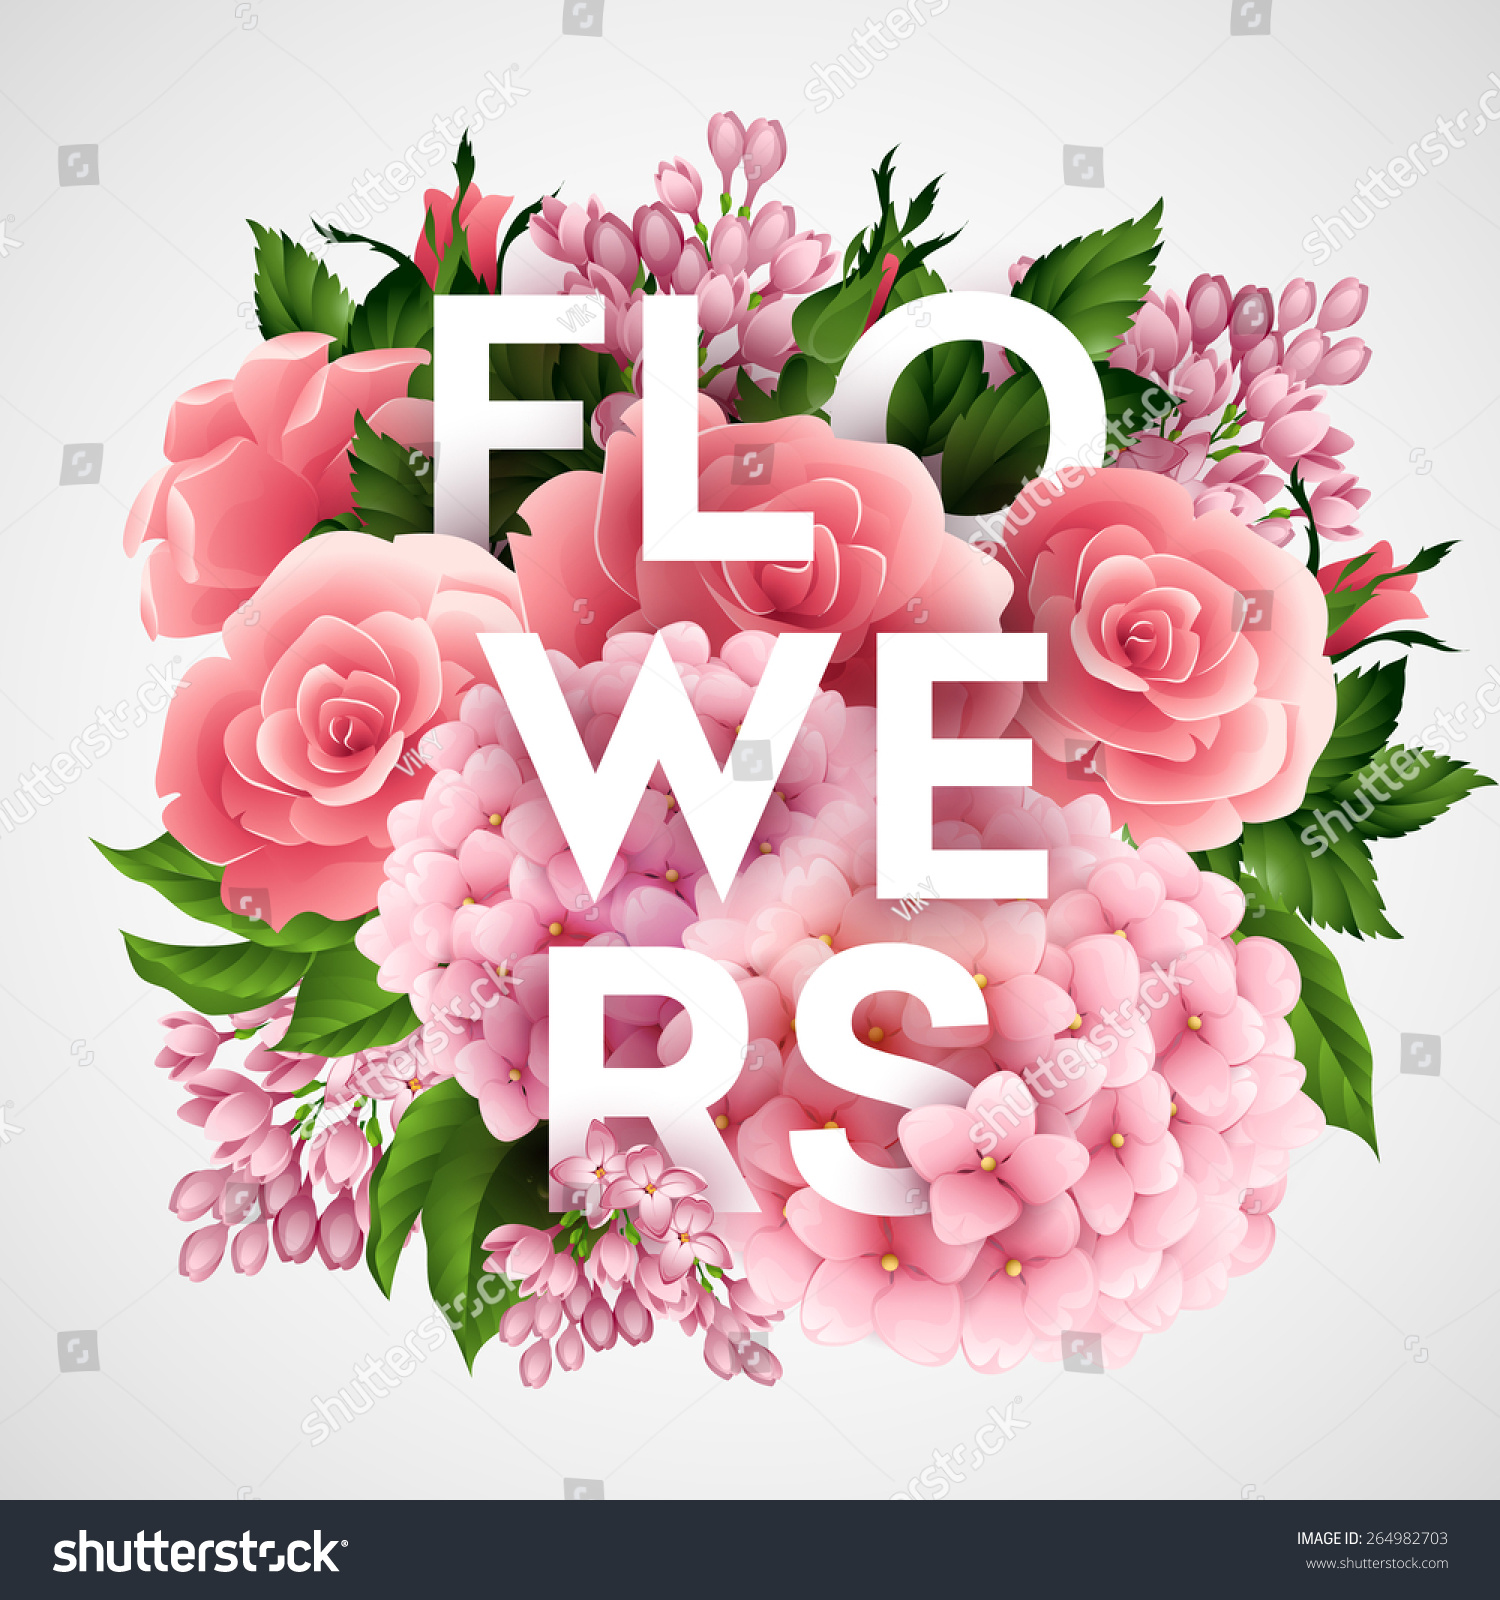 Stylish Vector Poster Beautiful Flowers Eps Stock Vector Royalty